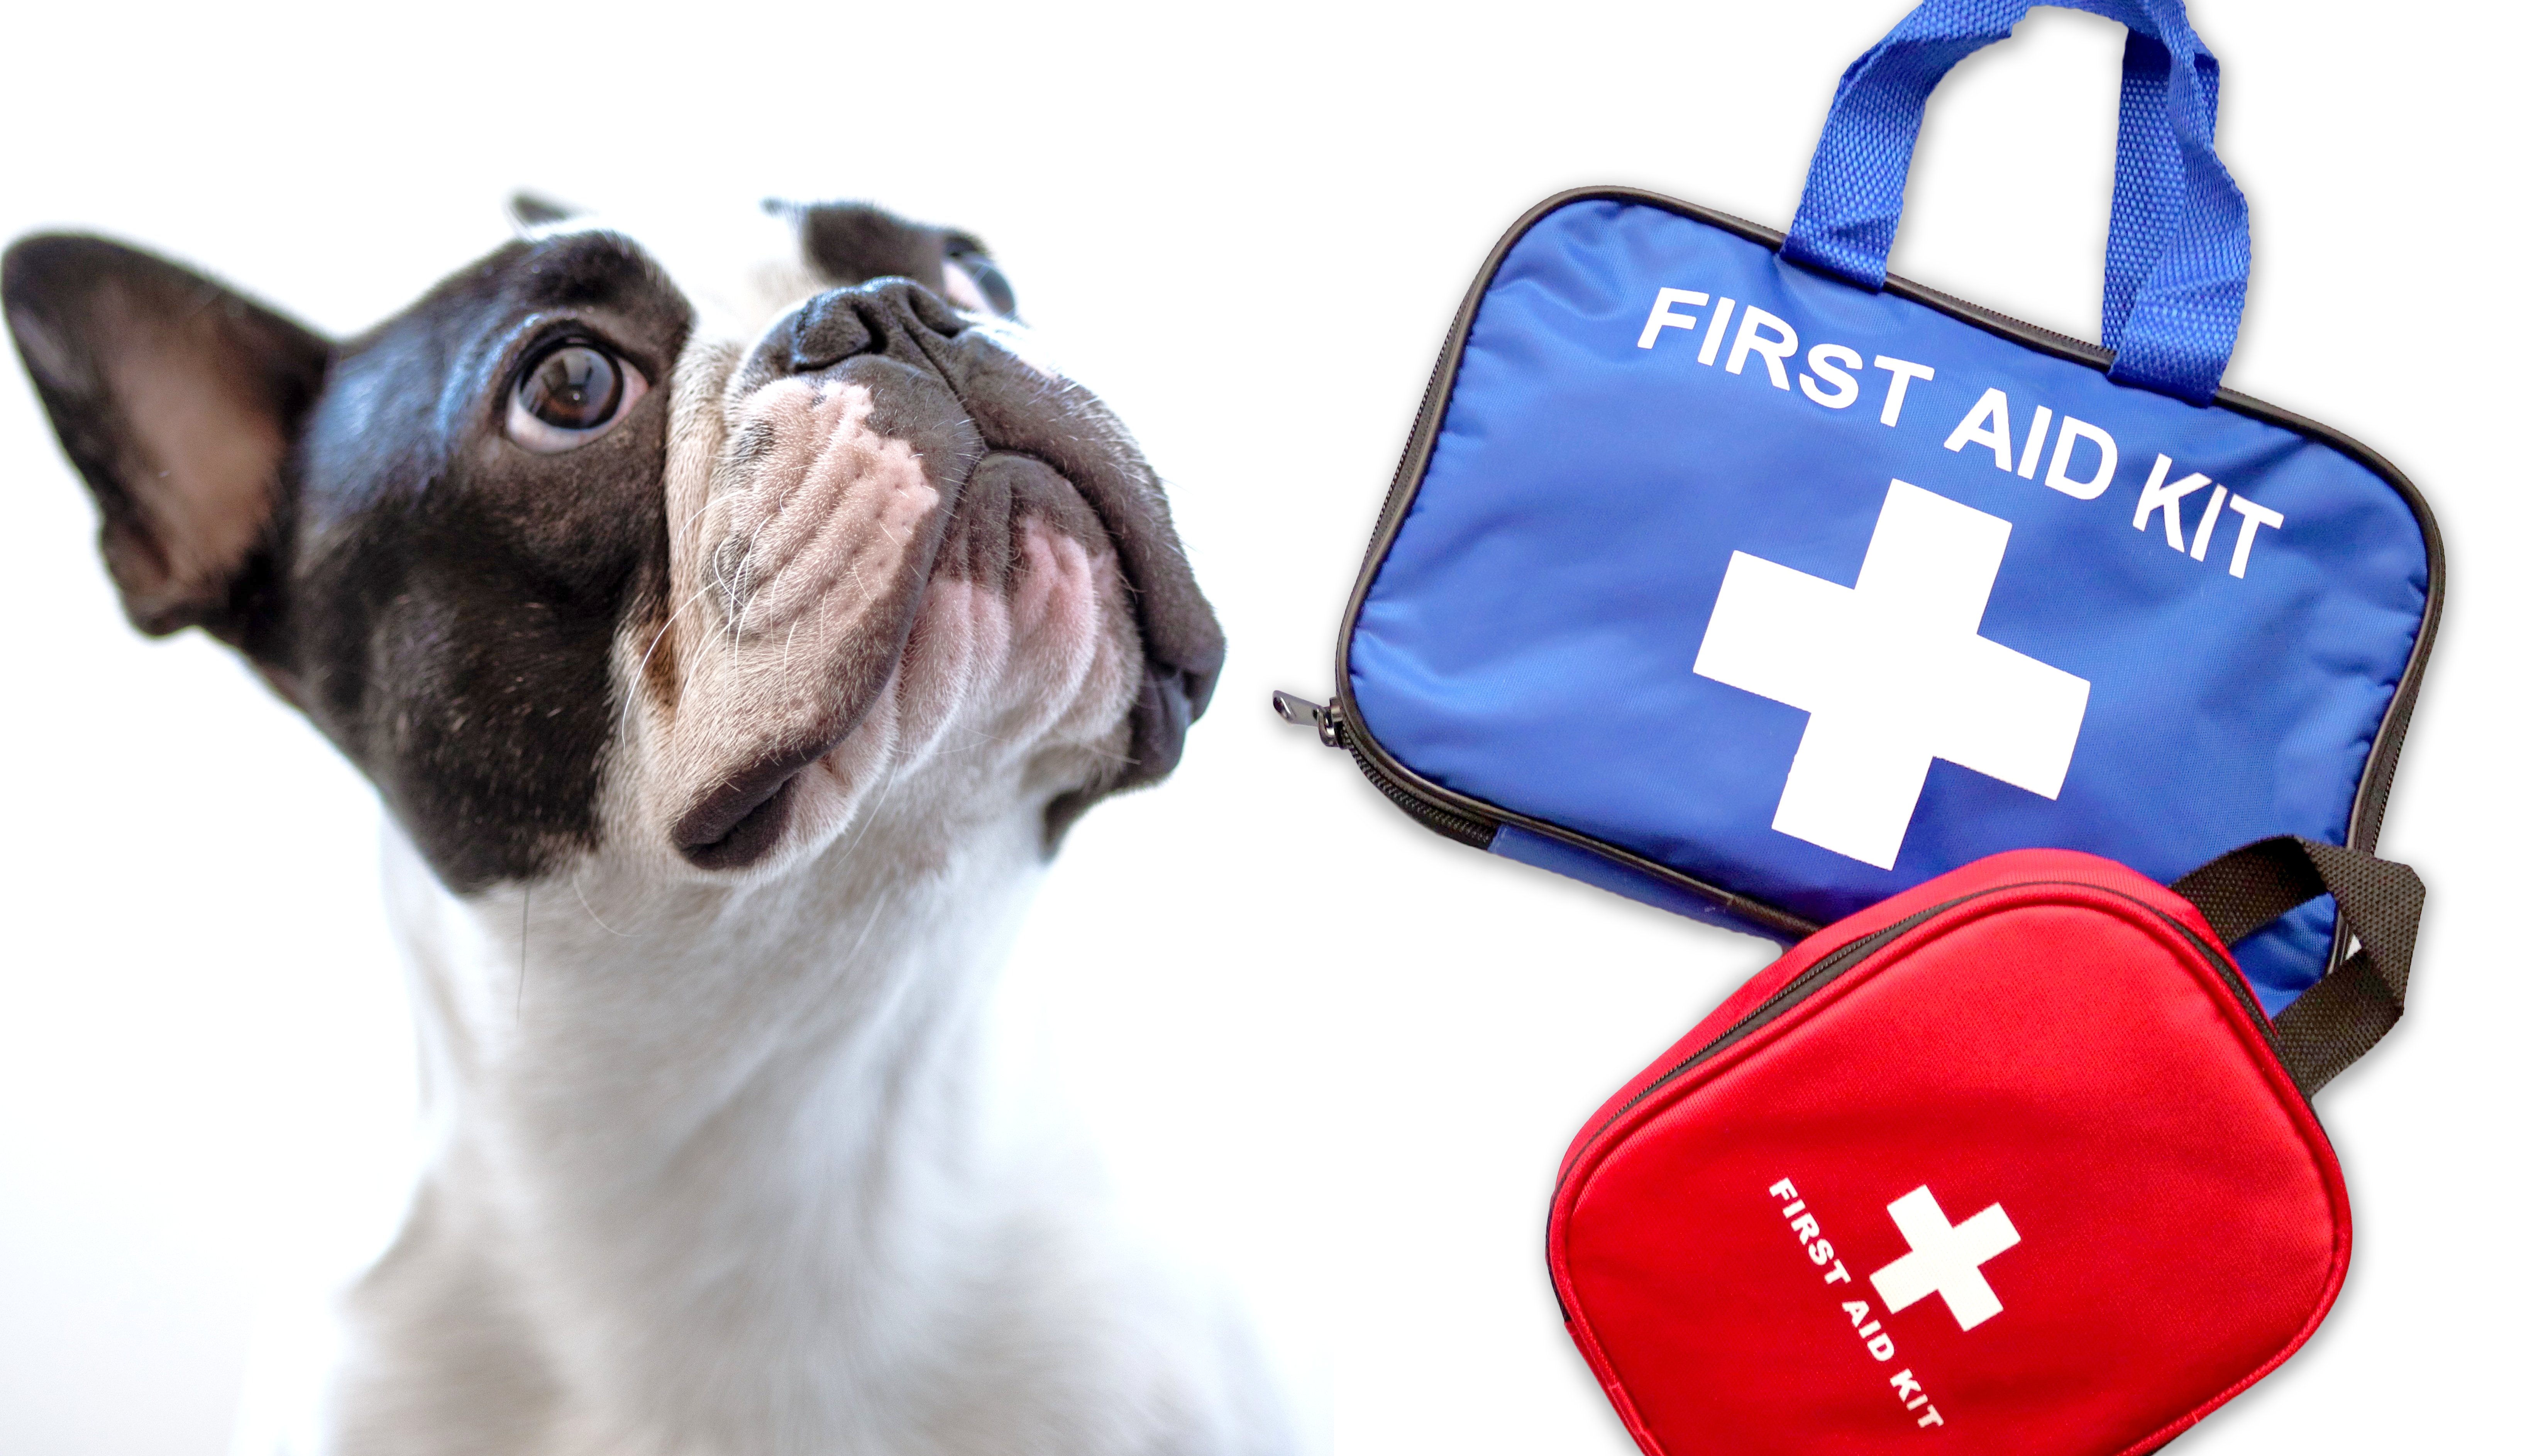 DIY First Aid Kit for Dogs - Essentials List